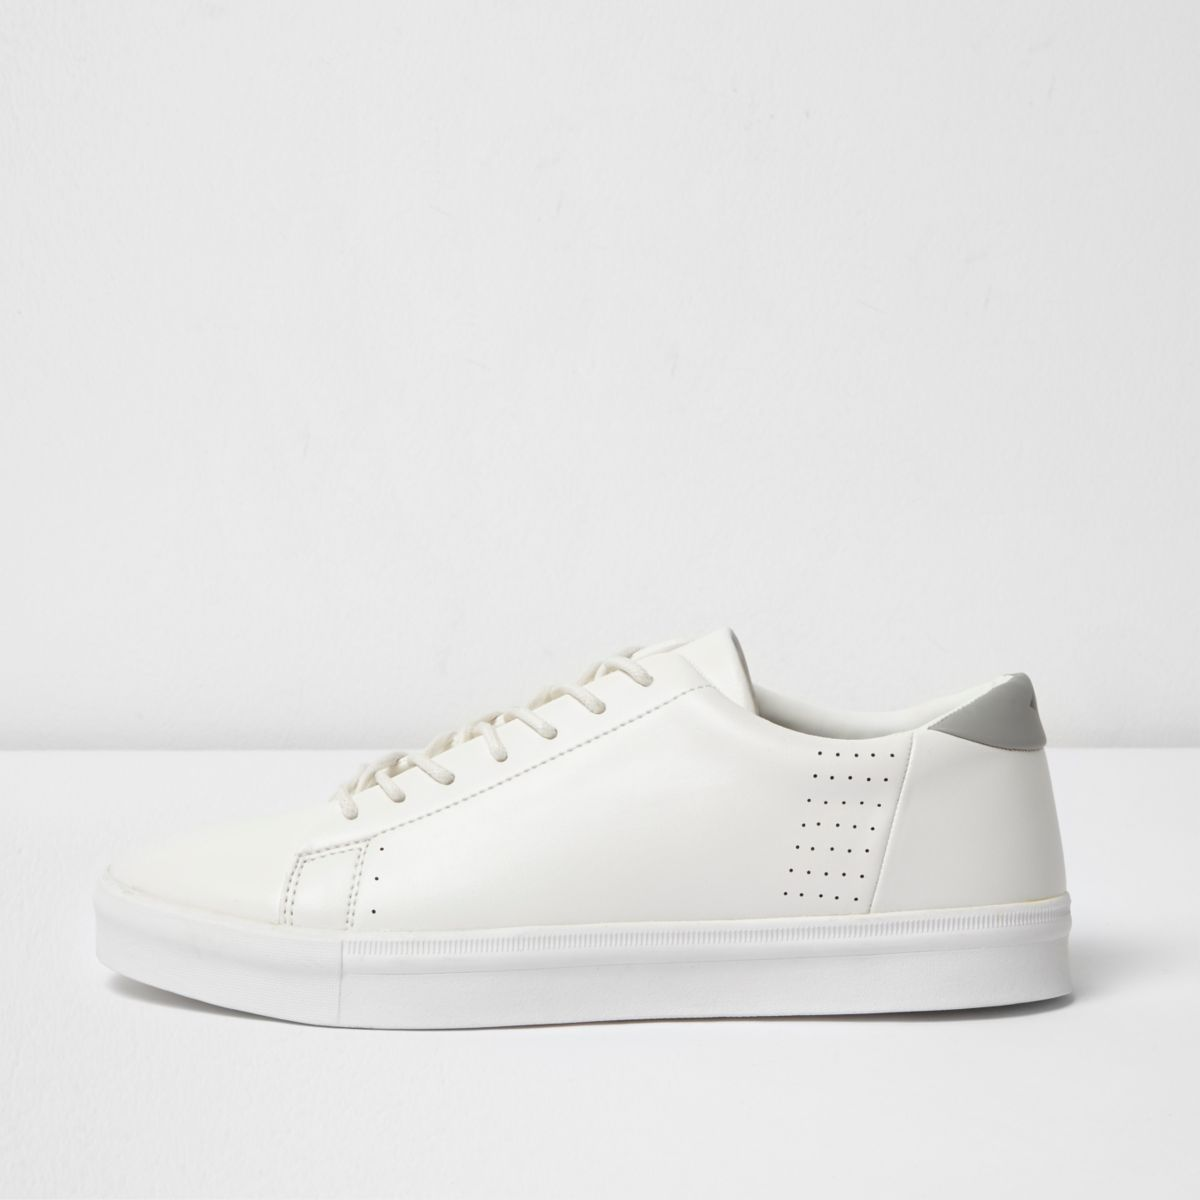 White lace-up perforated sneakers